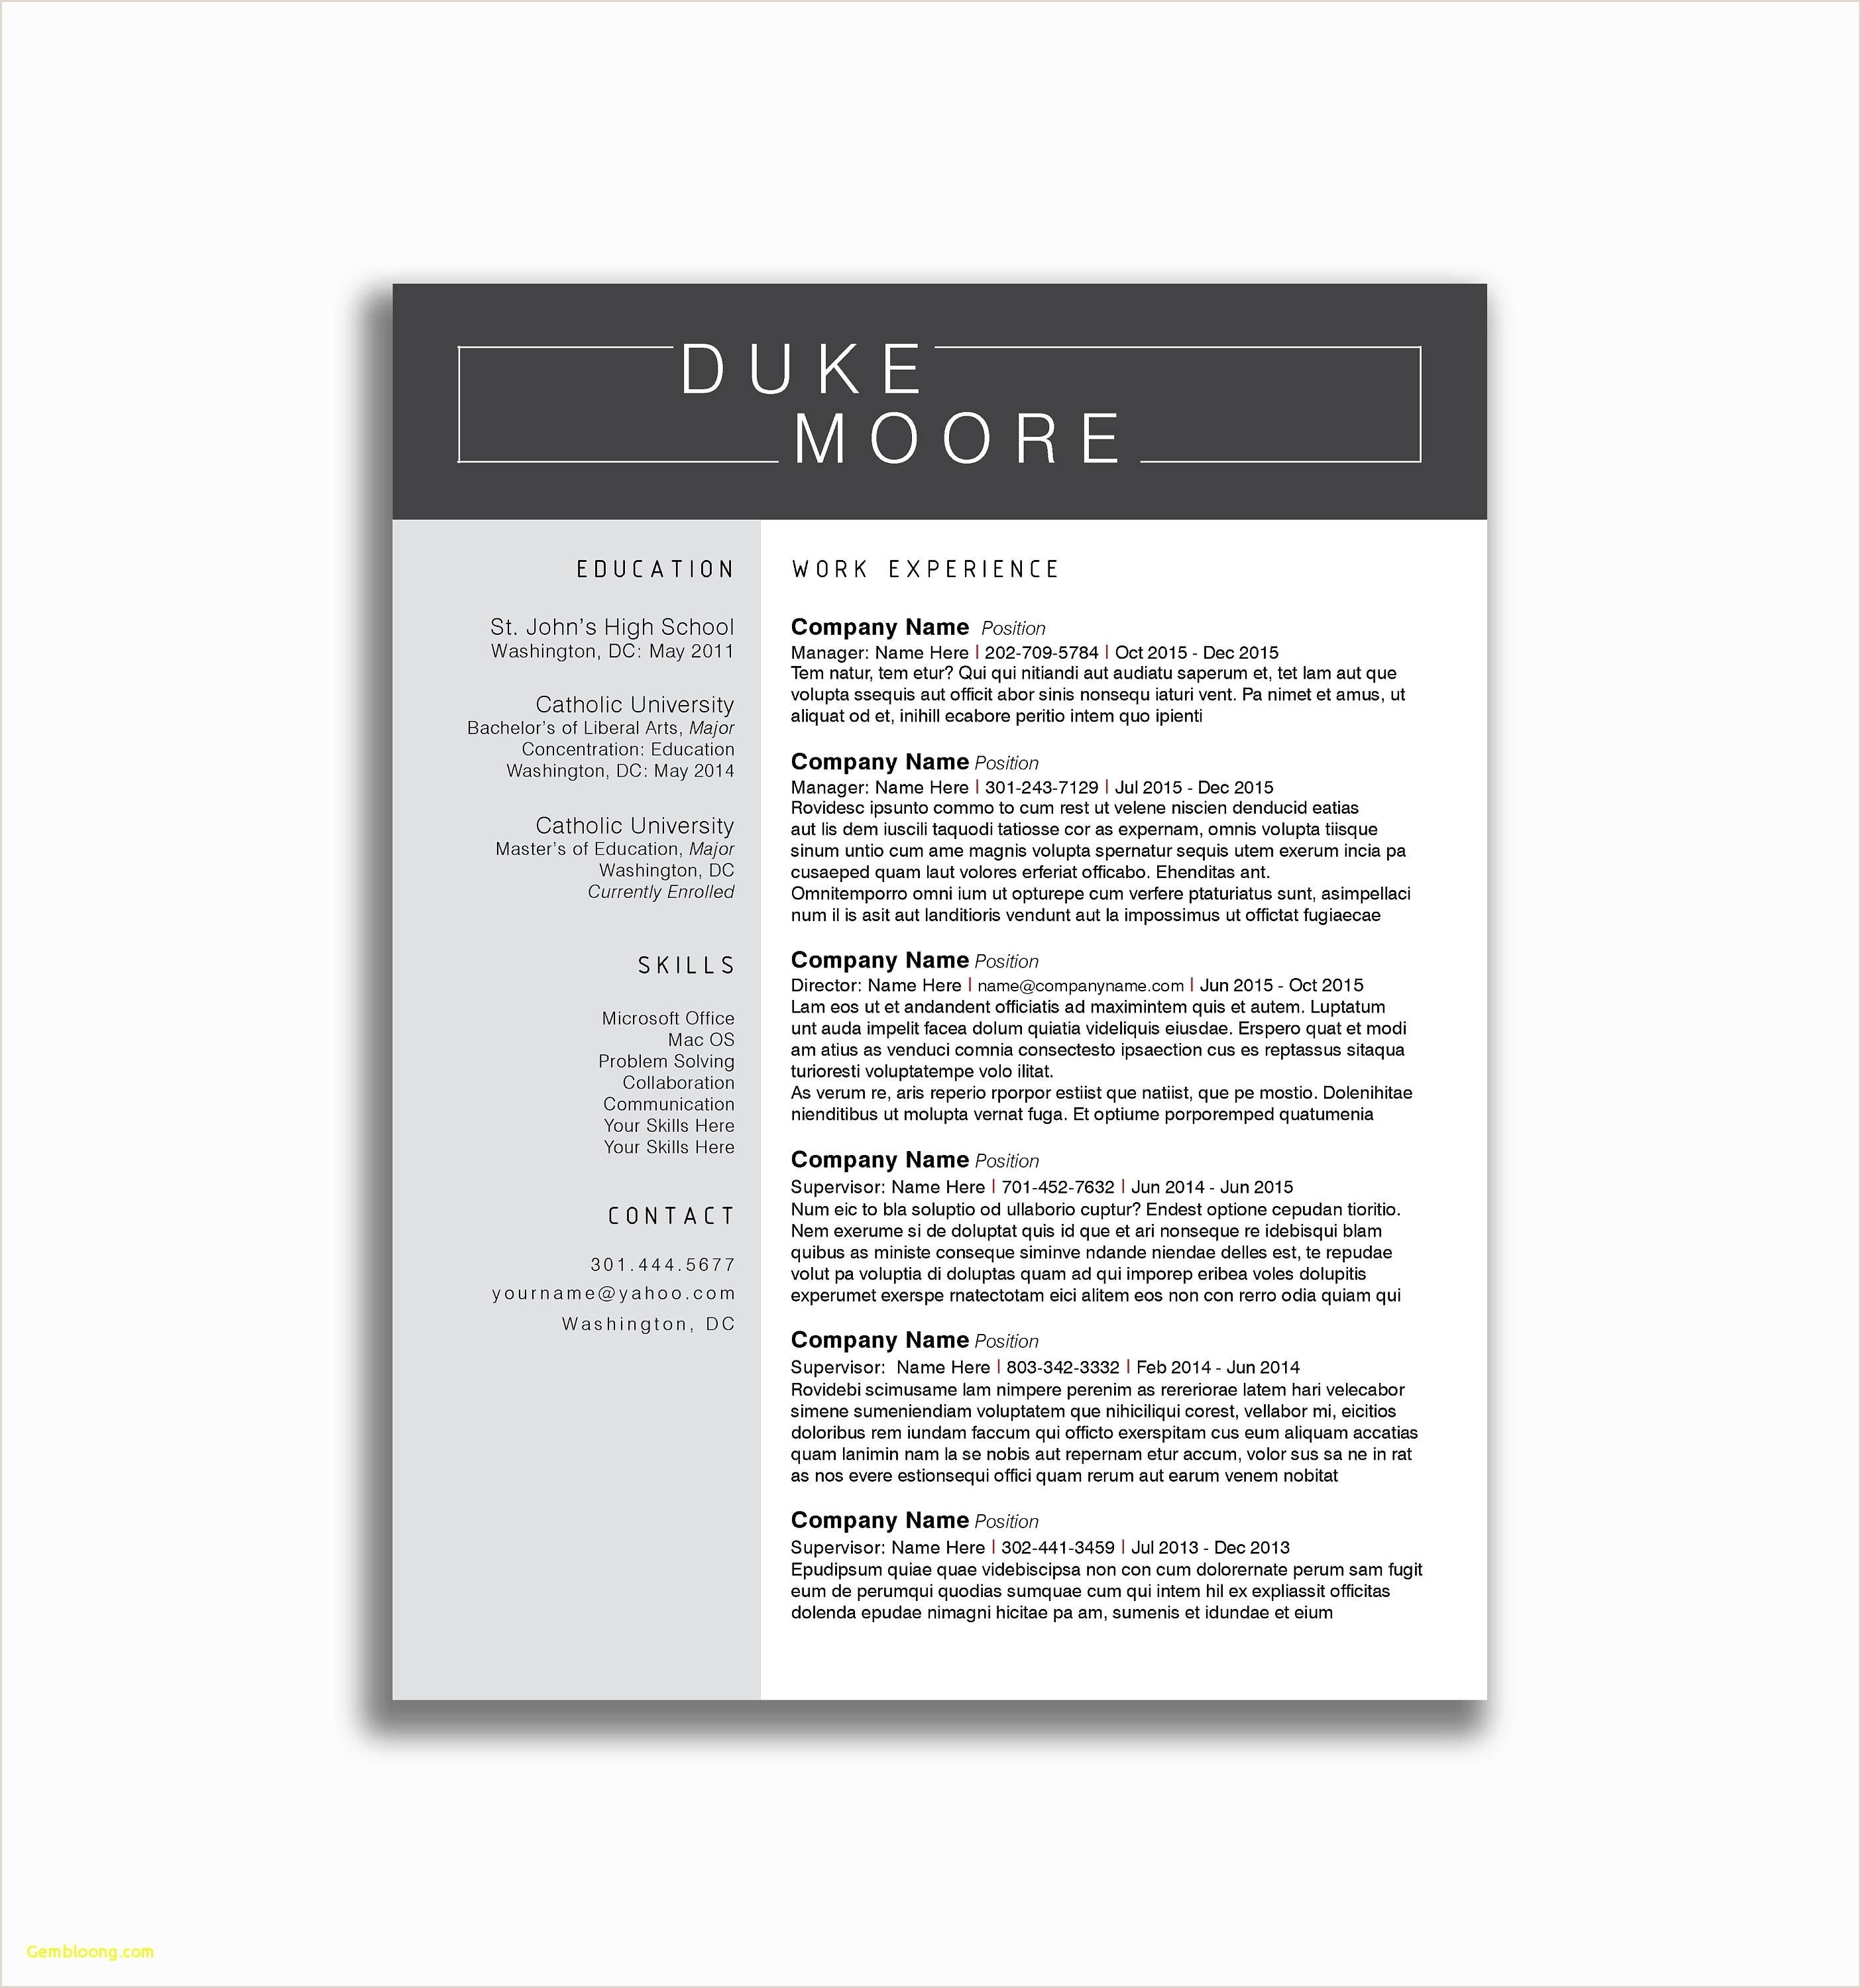 Legal Professional Cv format New Resume for Manager Position